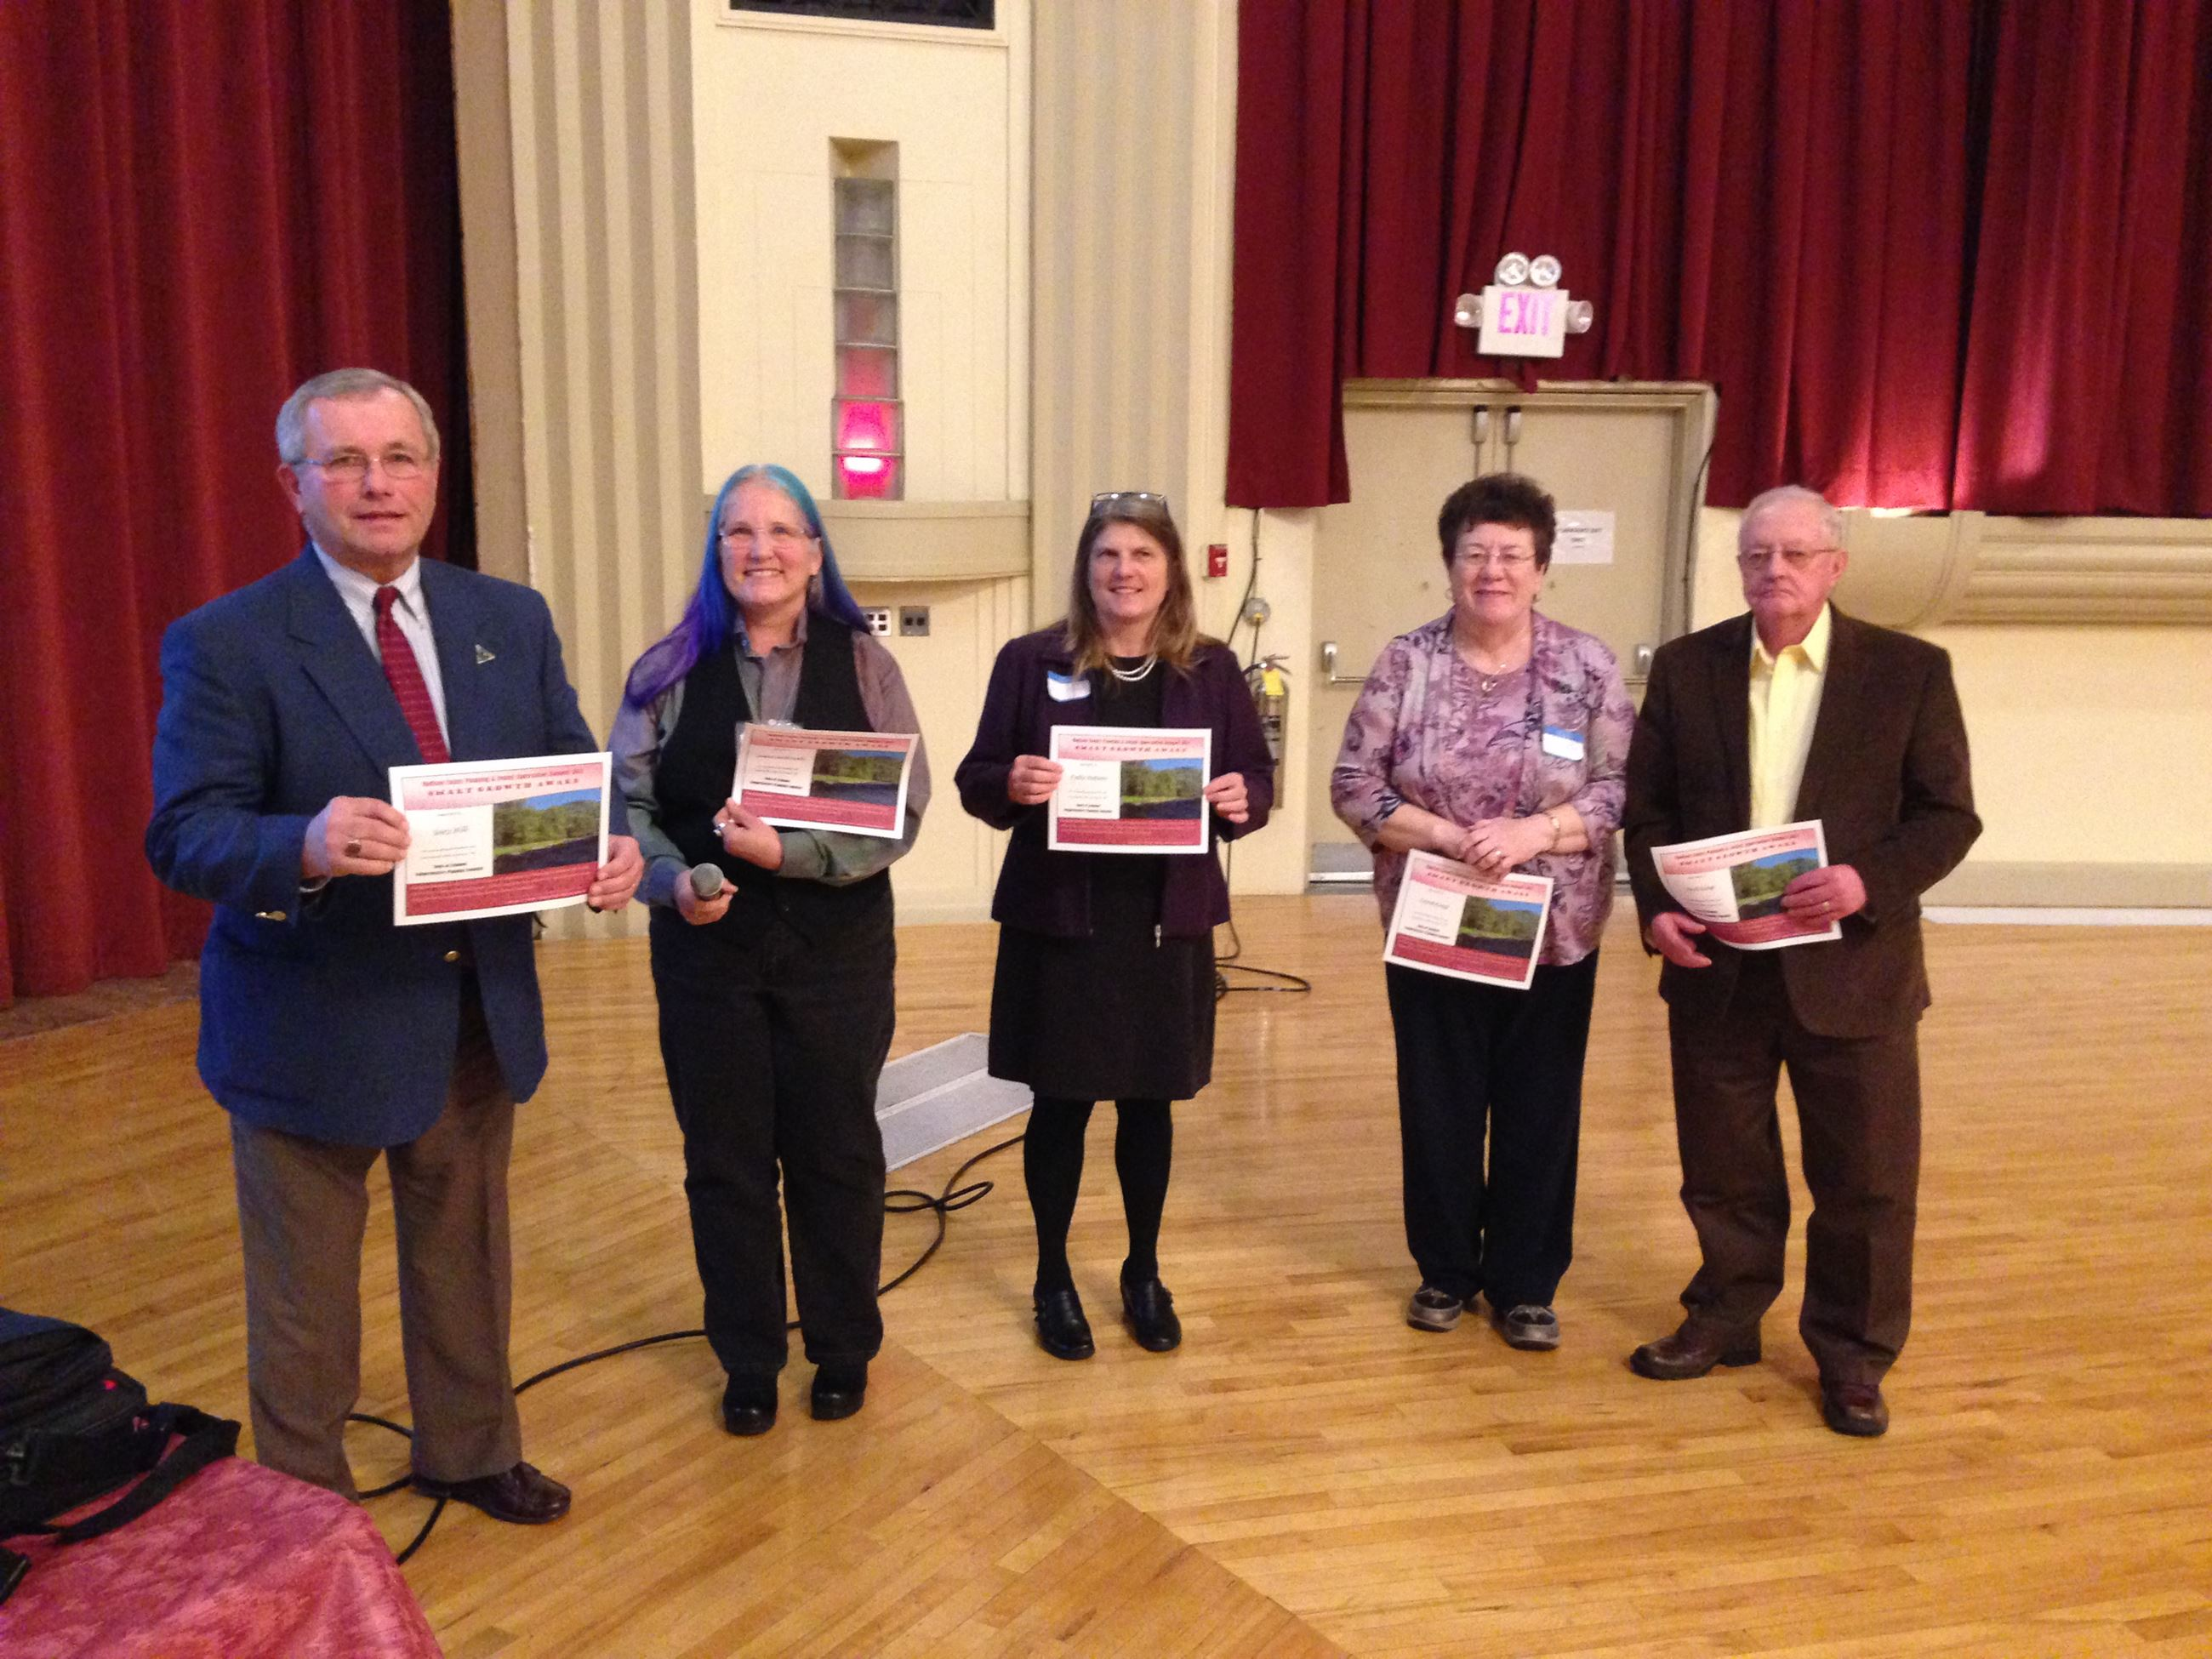 Town of Lebanon Comprehensive Planning Committee award members